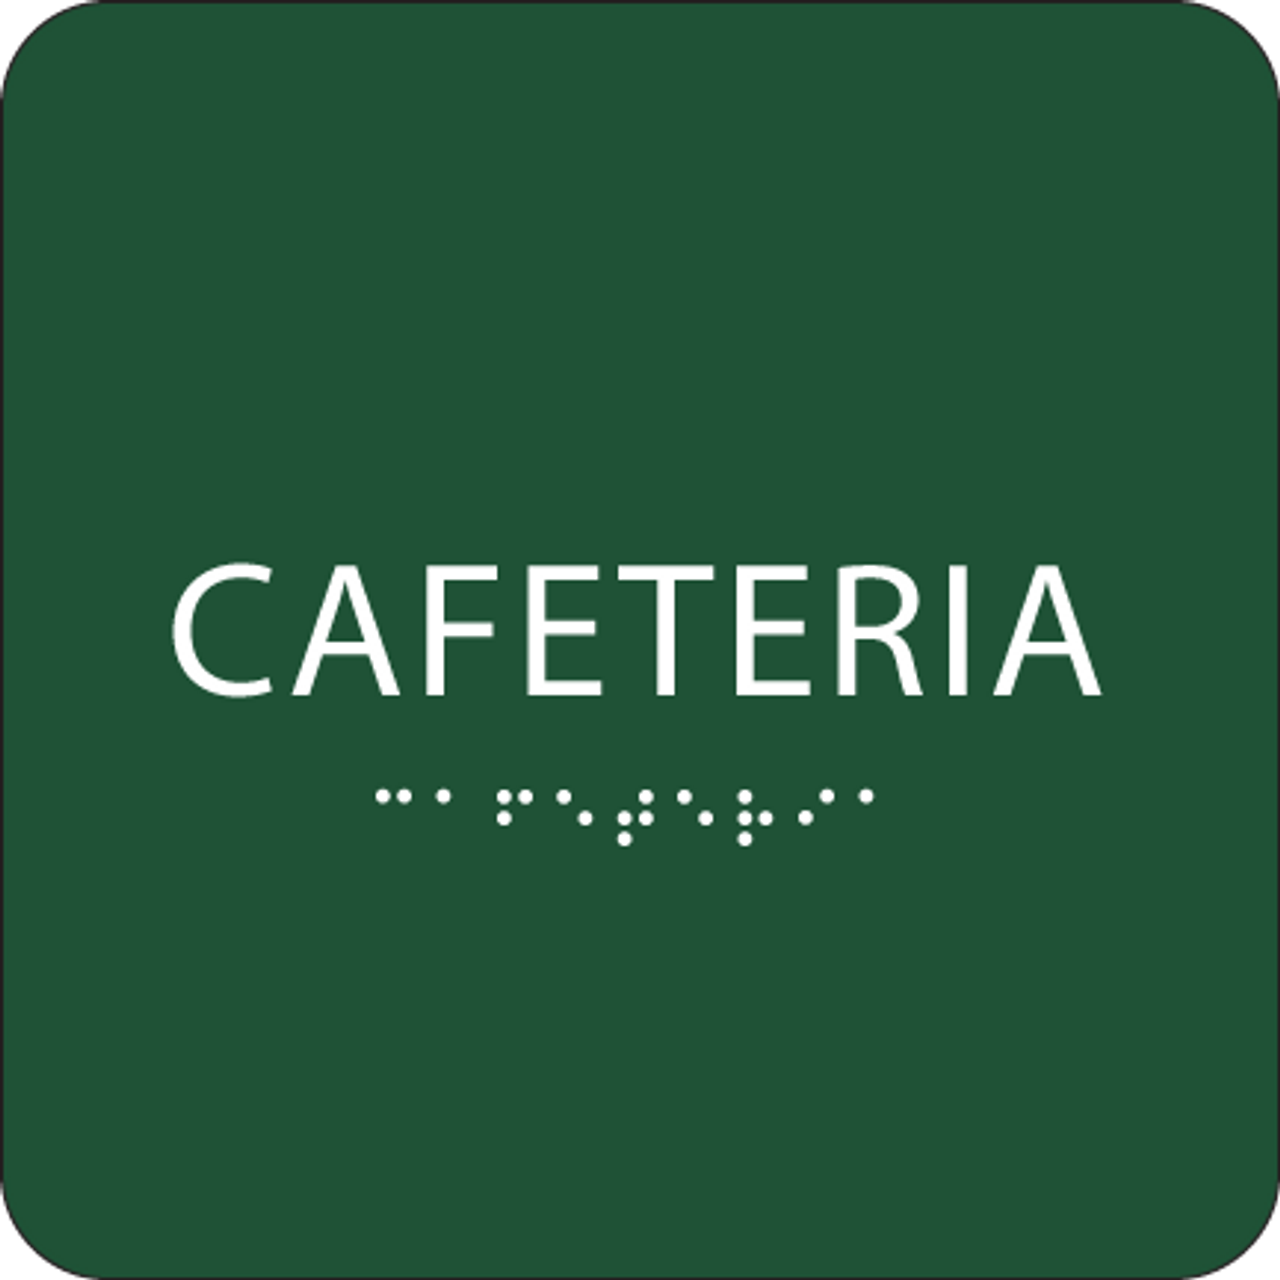 Green Cafeteria ADA Sign